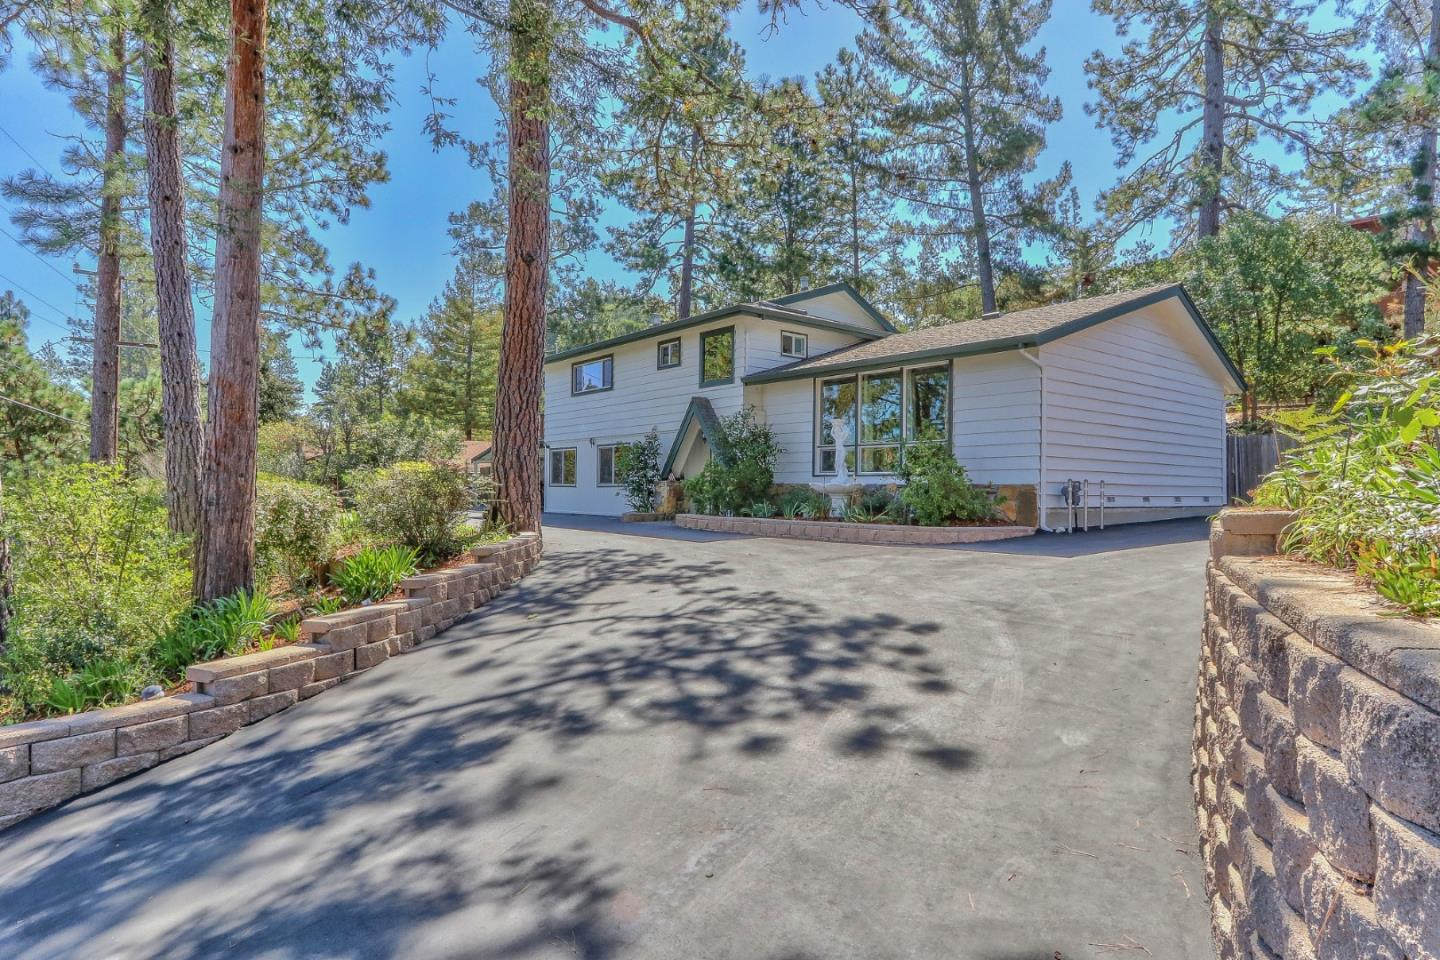 Wonderful opportunity to own this 4 bedroom 2.5 bathroom home nestled among the pine tree's in Scotts Valley. This spacious 2782 sqft residence boasts many upgrades within the past few years including new interior and exterior paint, new windows, new carpet, remodeled master bathroom, new interior doors and hardware, a commercial grade driveway and updated landscaping. The 50 year presidential roof was installed in 2008 and has a ton of life left in it!  In addition to the 3 large bedrooms upstairs, there is an additional private office area upstairs and a 450+ sqft in-law unit with private living room, bedroom and bathroom on the first floor. Driveway has room for two RV's(hookups included) or boats/toys  including a two car covered carport. The backyard has a large covered patio area, raised decking with synthetic lawn and a 300 sqft upstairs patio area to enjoy serene views of the distant mountains. Plenty of storage areas on site! This a truly a beautiful property to call home!